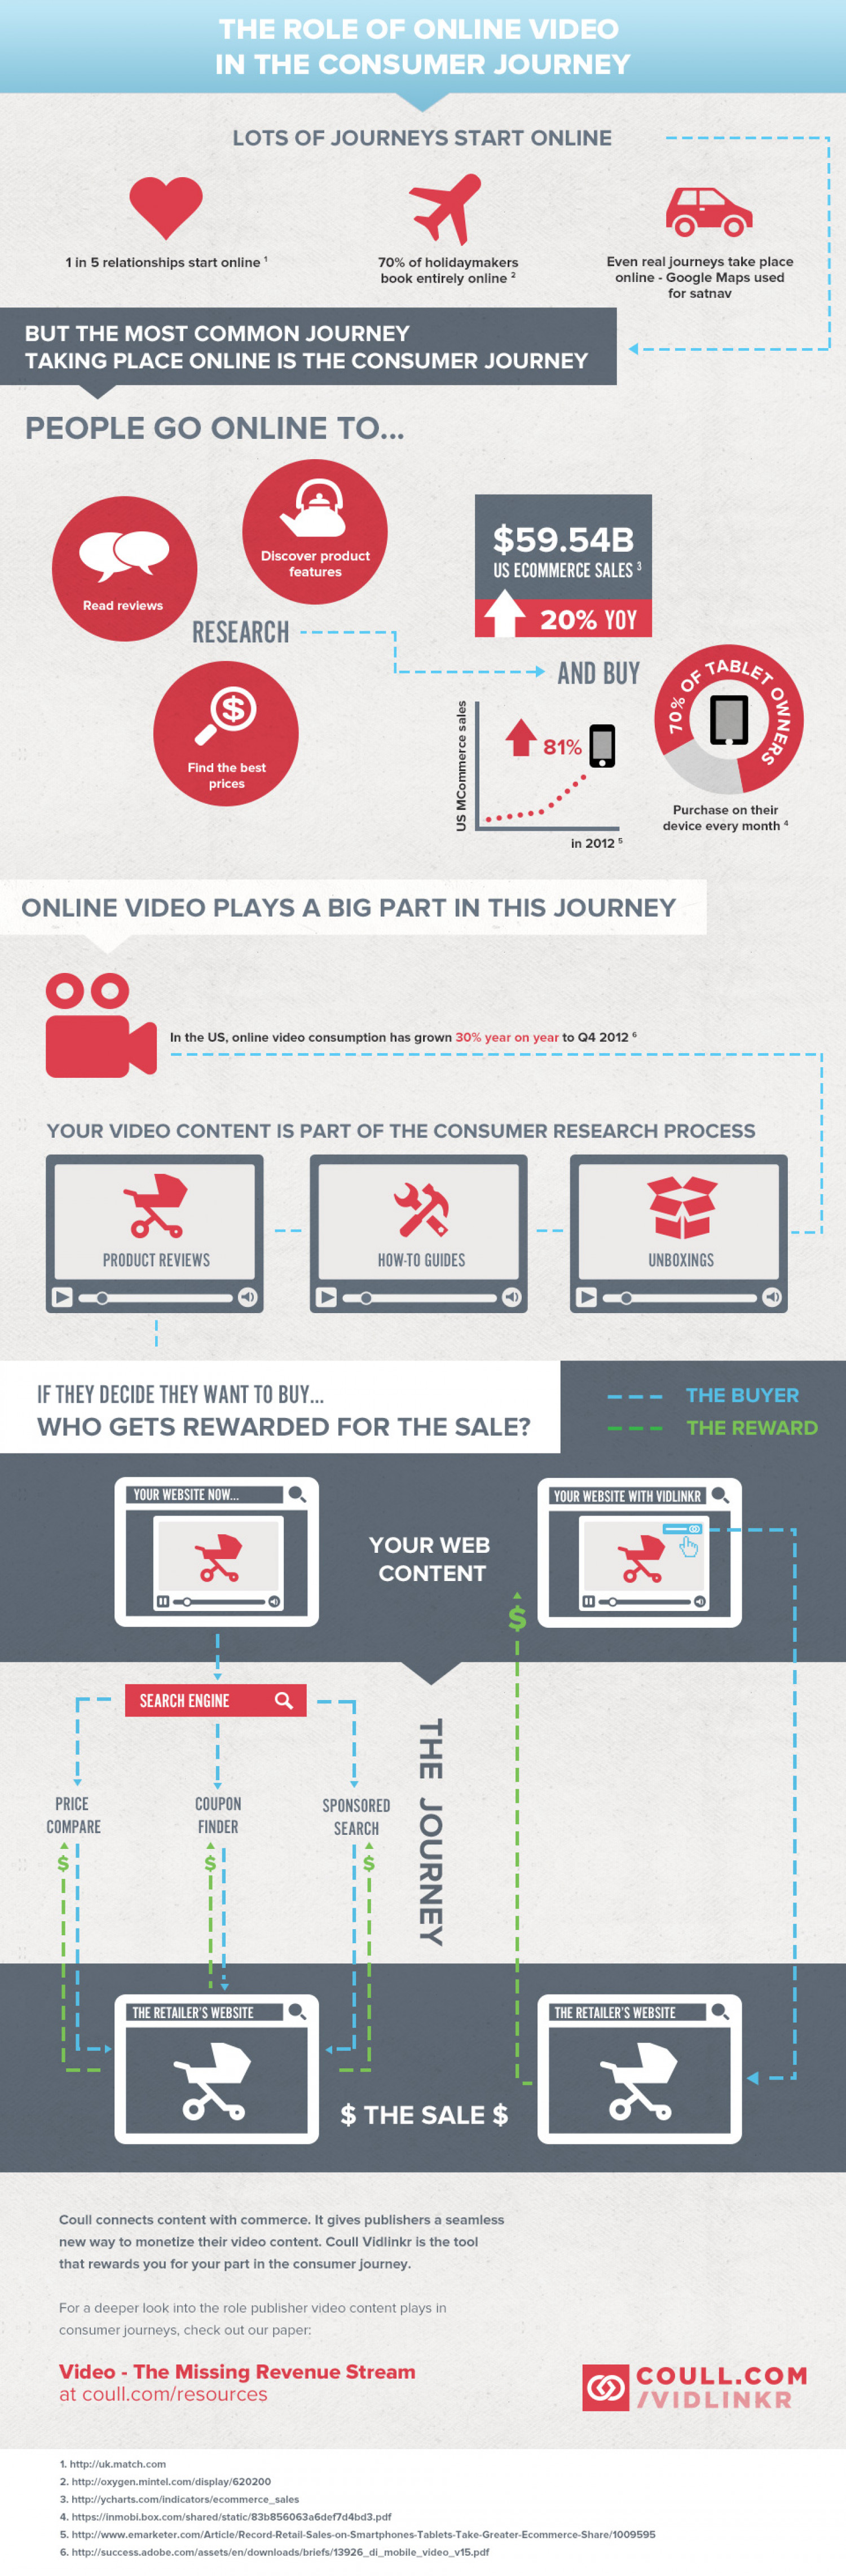 The Role of Online Video in the Consumer Journey Infographic